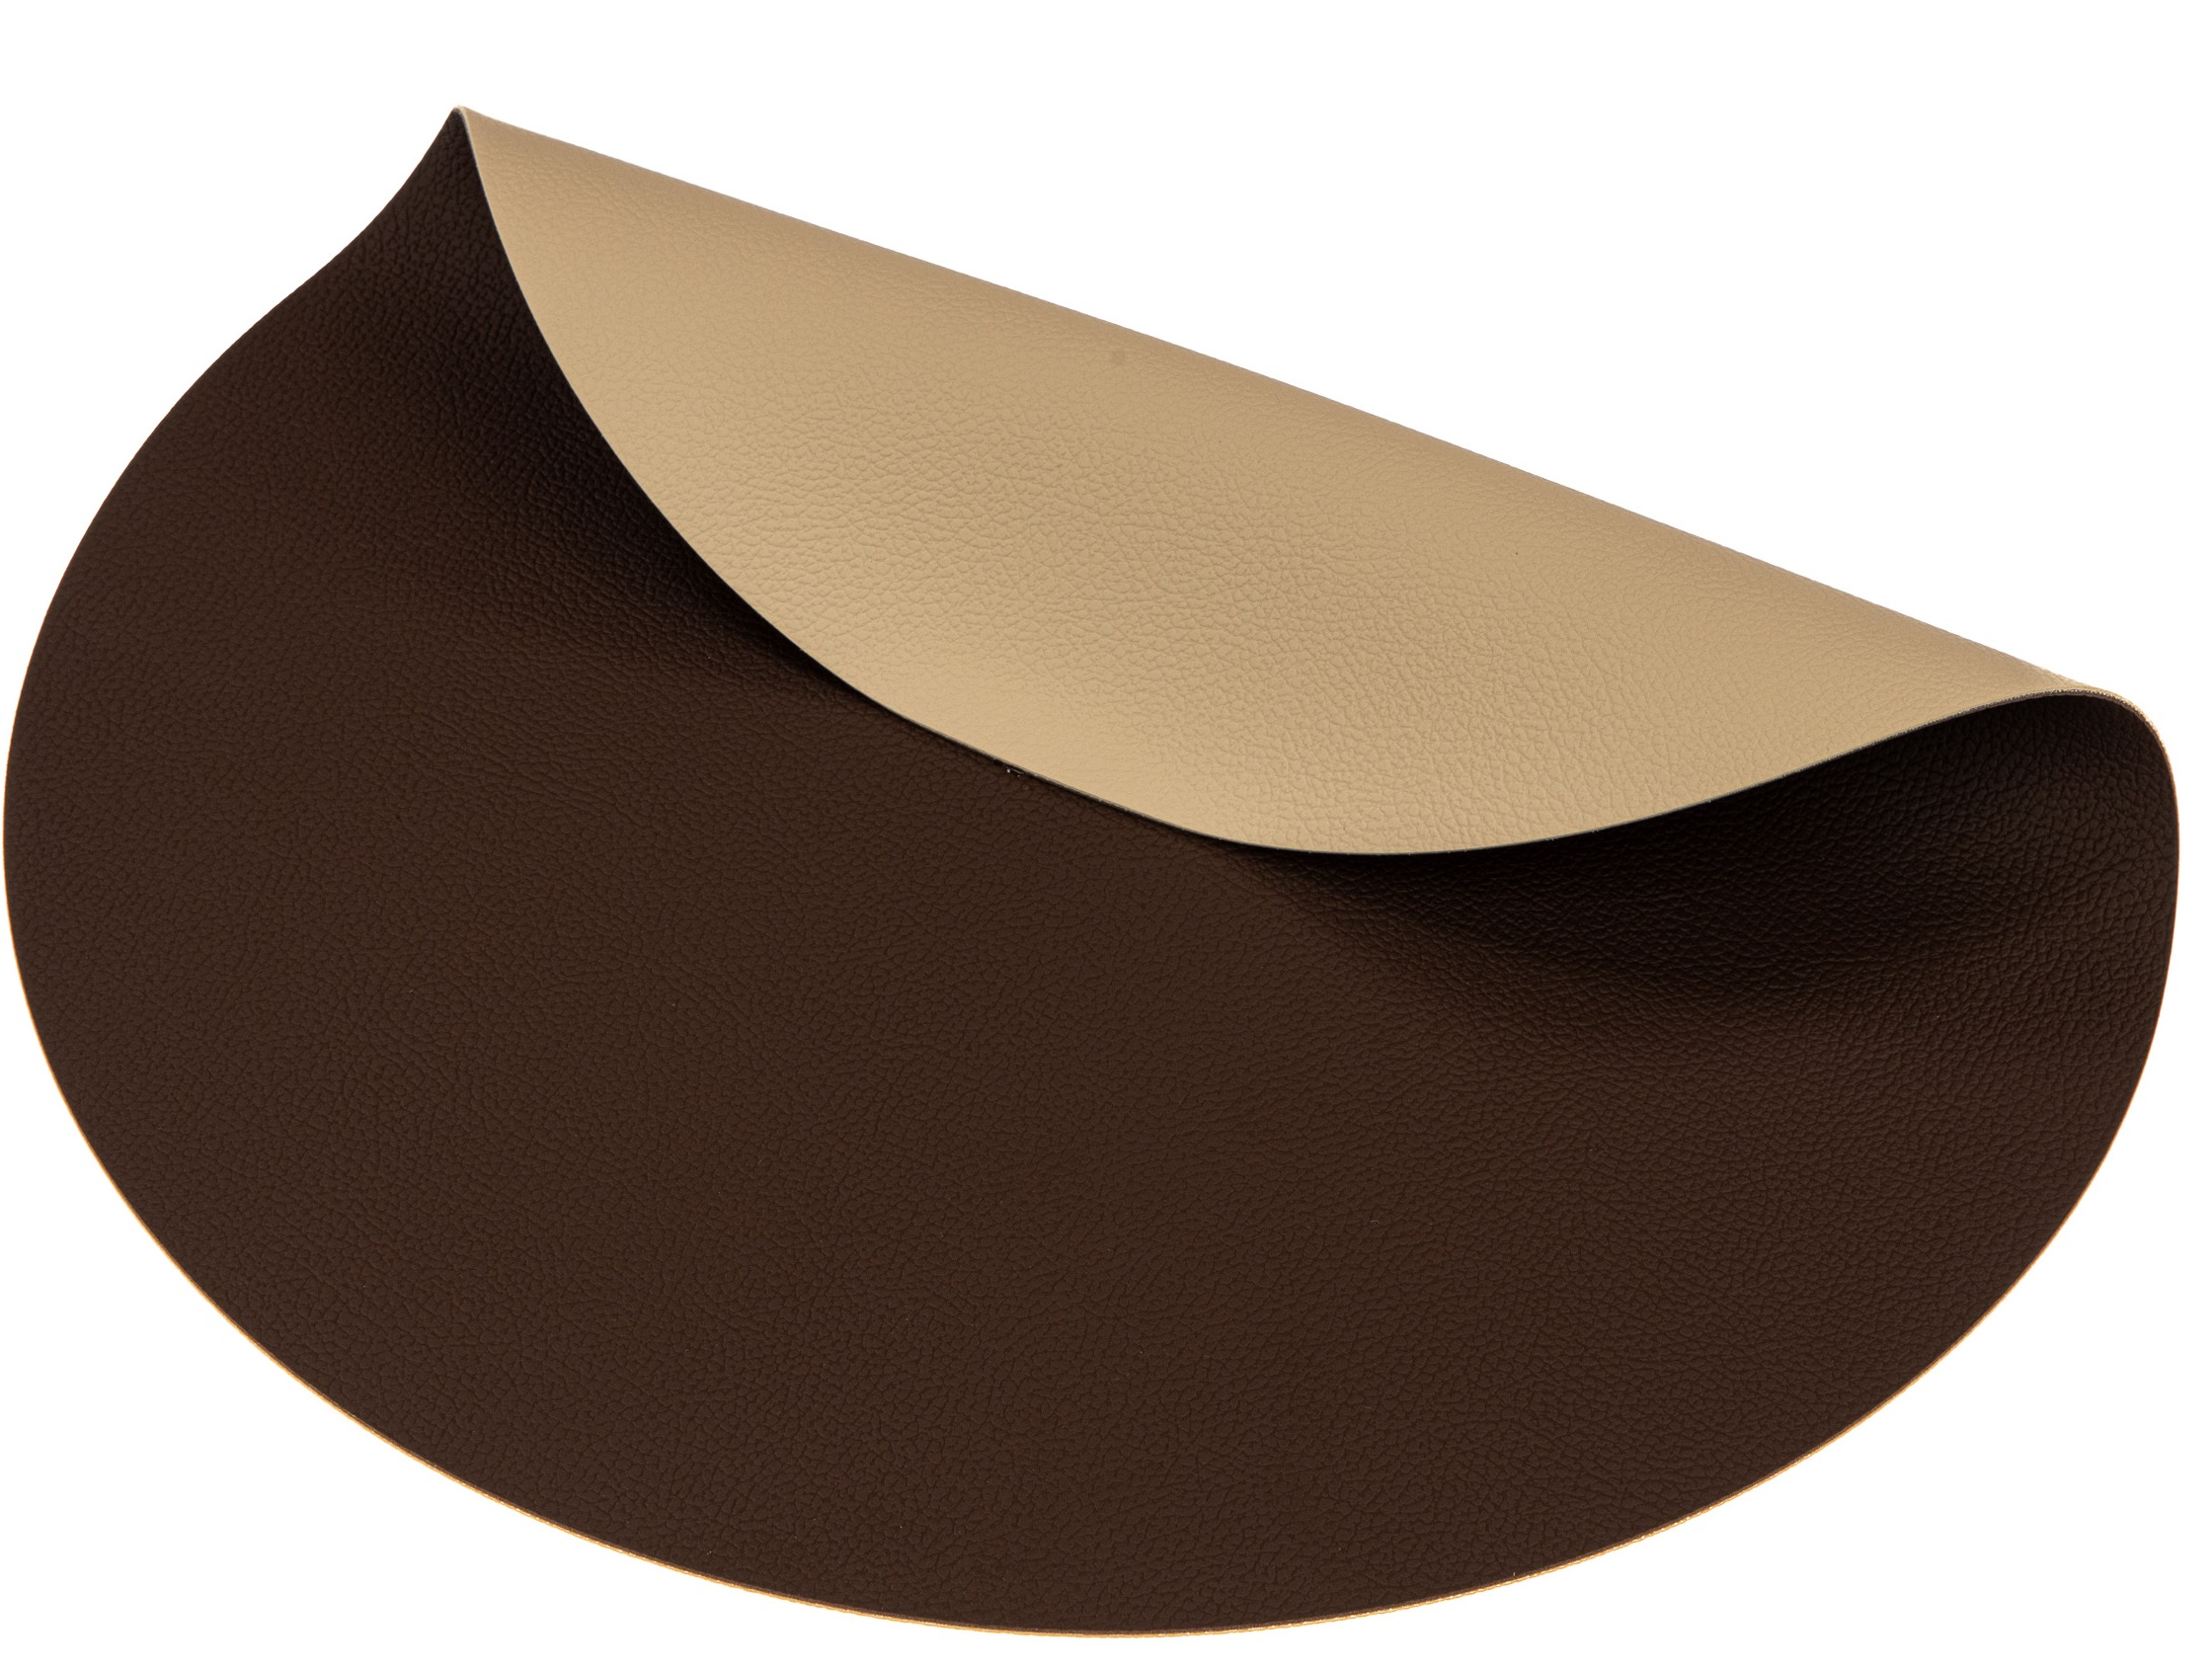 Jay Hill Placemats Rond Leer Bruin Zand  38 cm - 6 Stuks